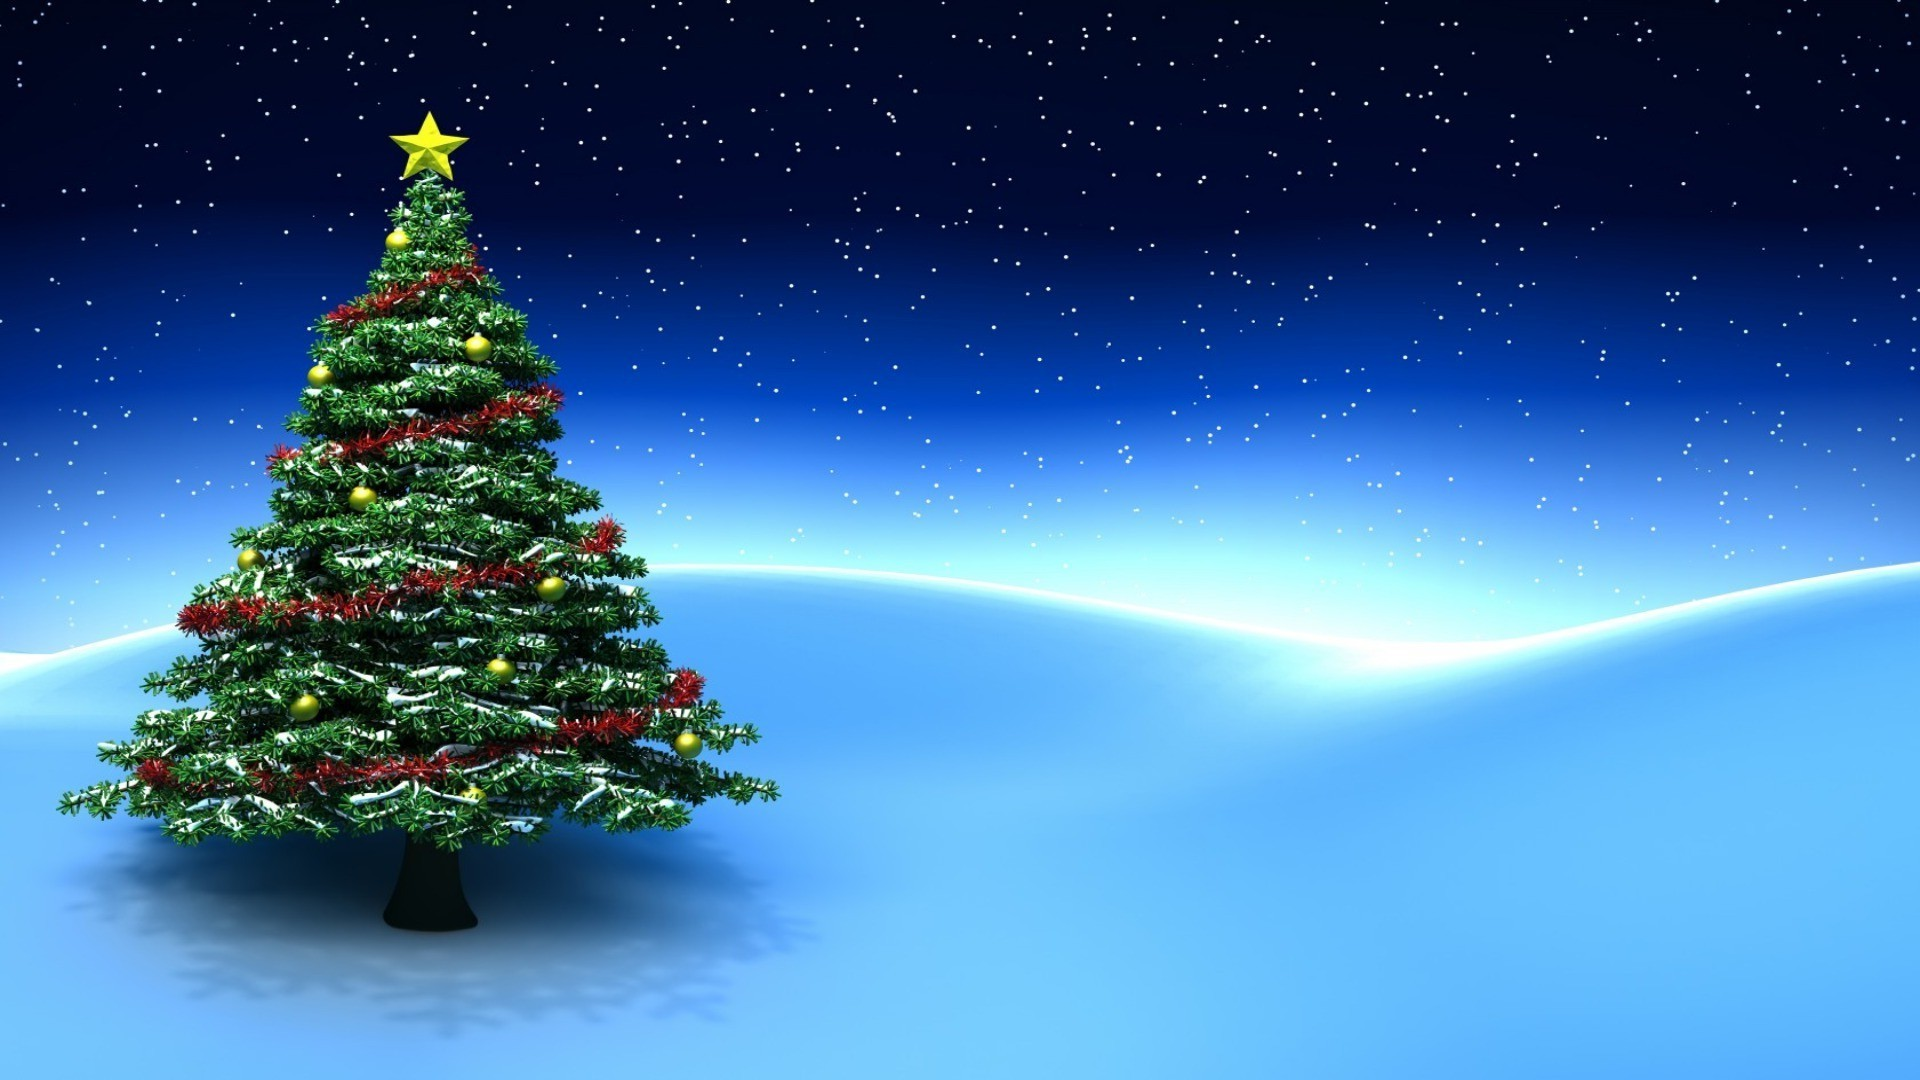 new year christmas winter snow tree christmas tree moon celebration sky outdoors fir evergreen pine conifer light